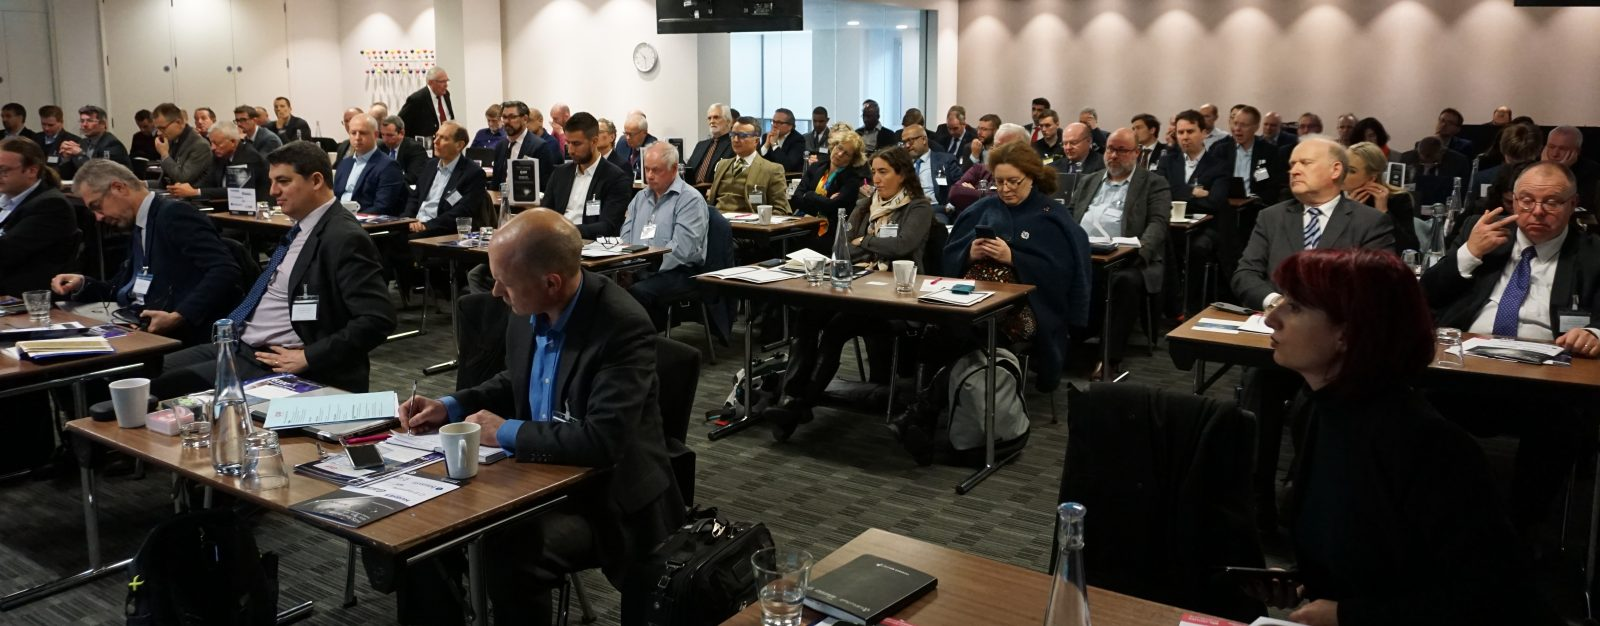 'HTS Roundtable 2019' – Post-event report